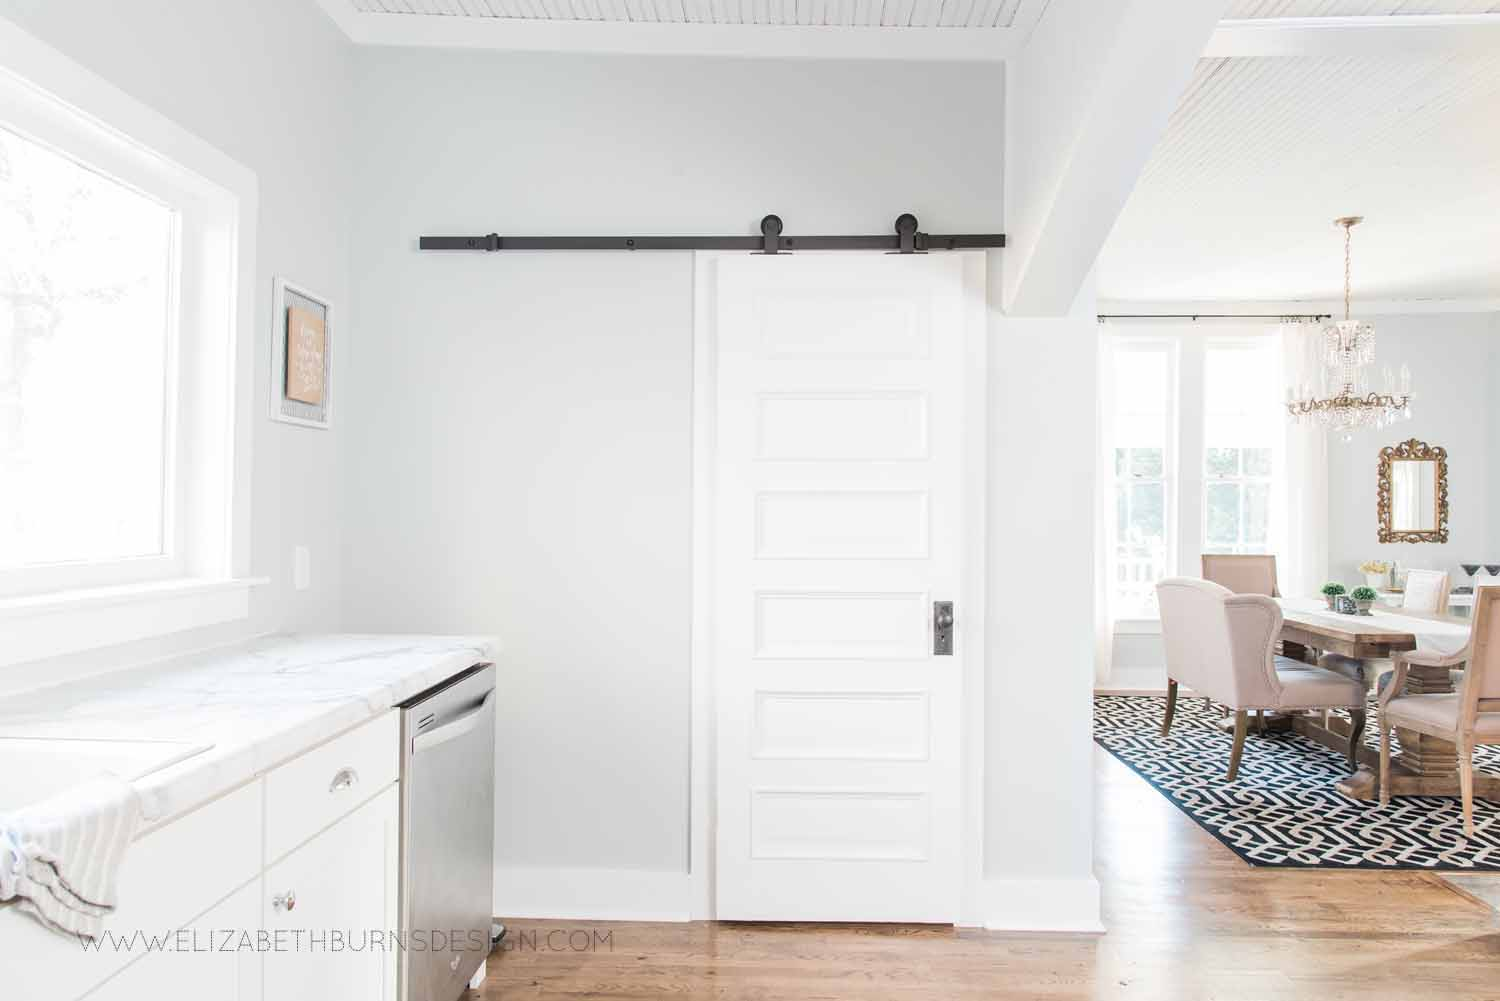 Elizabeth Burns Design Raleigh Interior Designer  Farmhouse Fixer Upper Cottage Renovation, Sherwin Williams Silver Strand SW 7057 White Shaker Cabinets Formica Marble Counters Kitchen (7).jpg